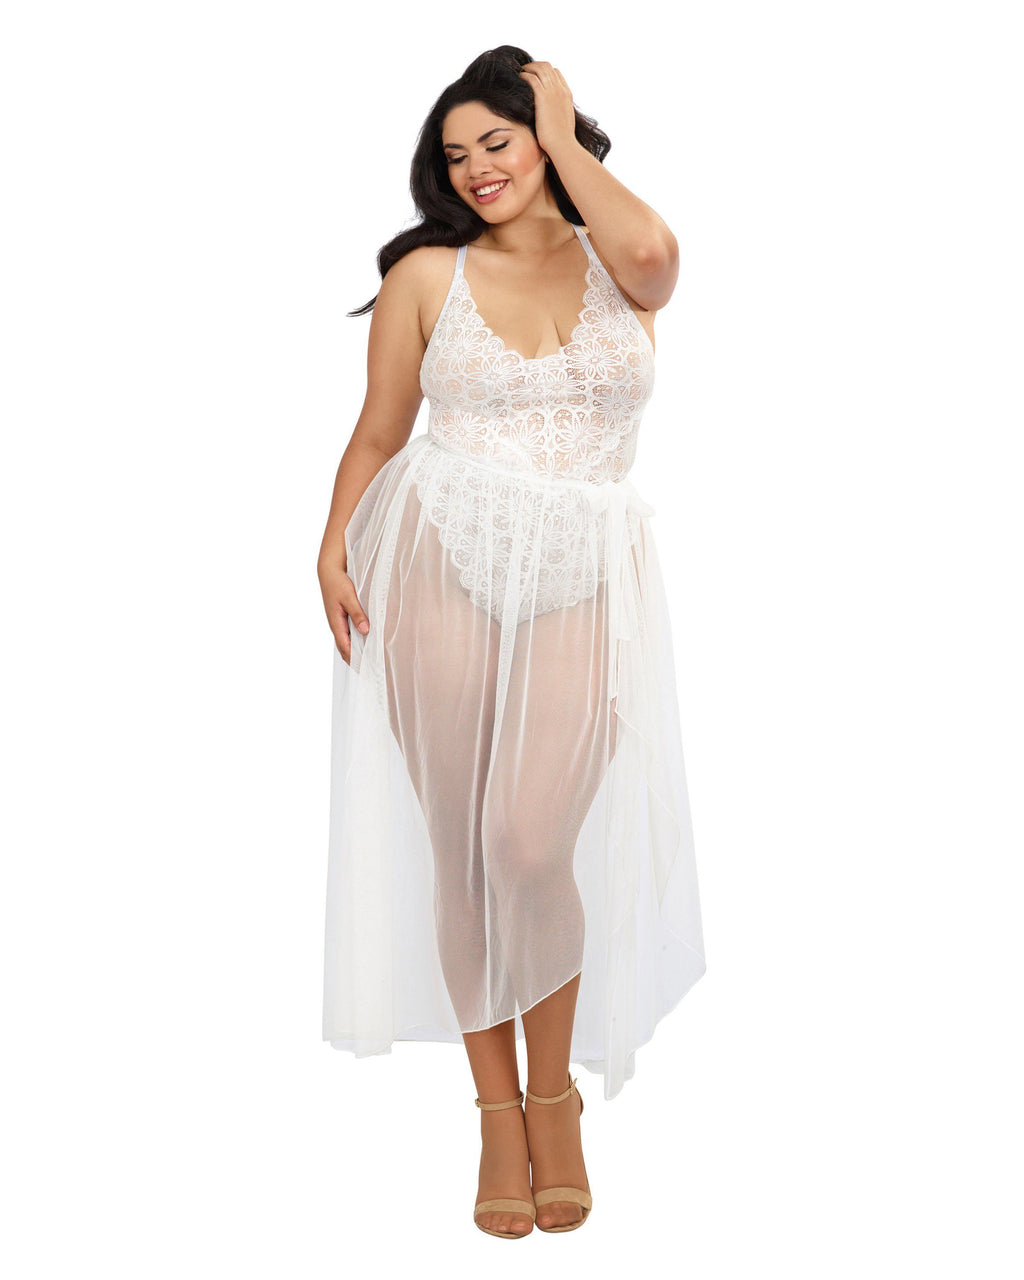 Plus Size Mosaic Lace Teddy & Sheer Skirt Teddy Dreamgirl International 1X White